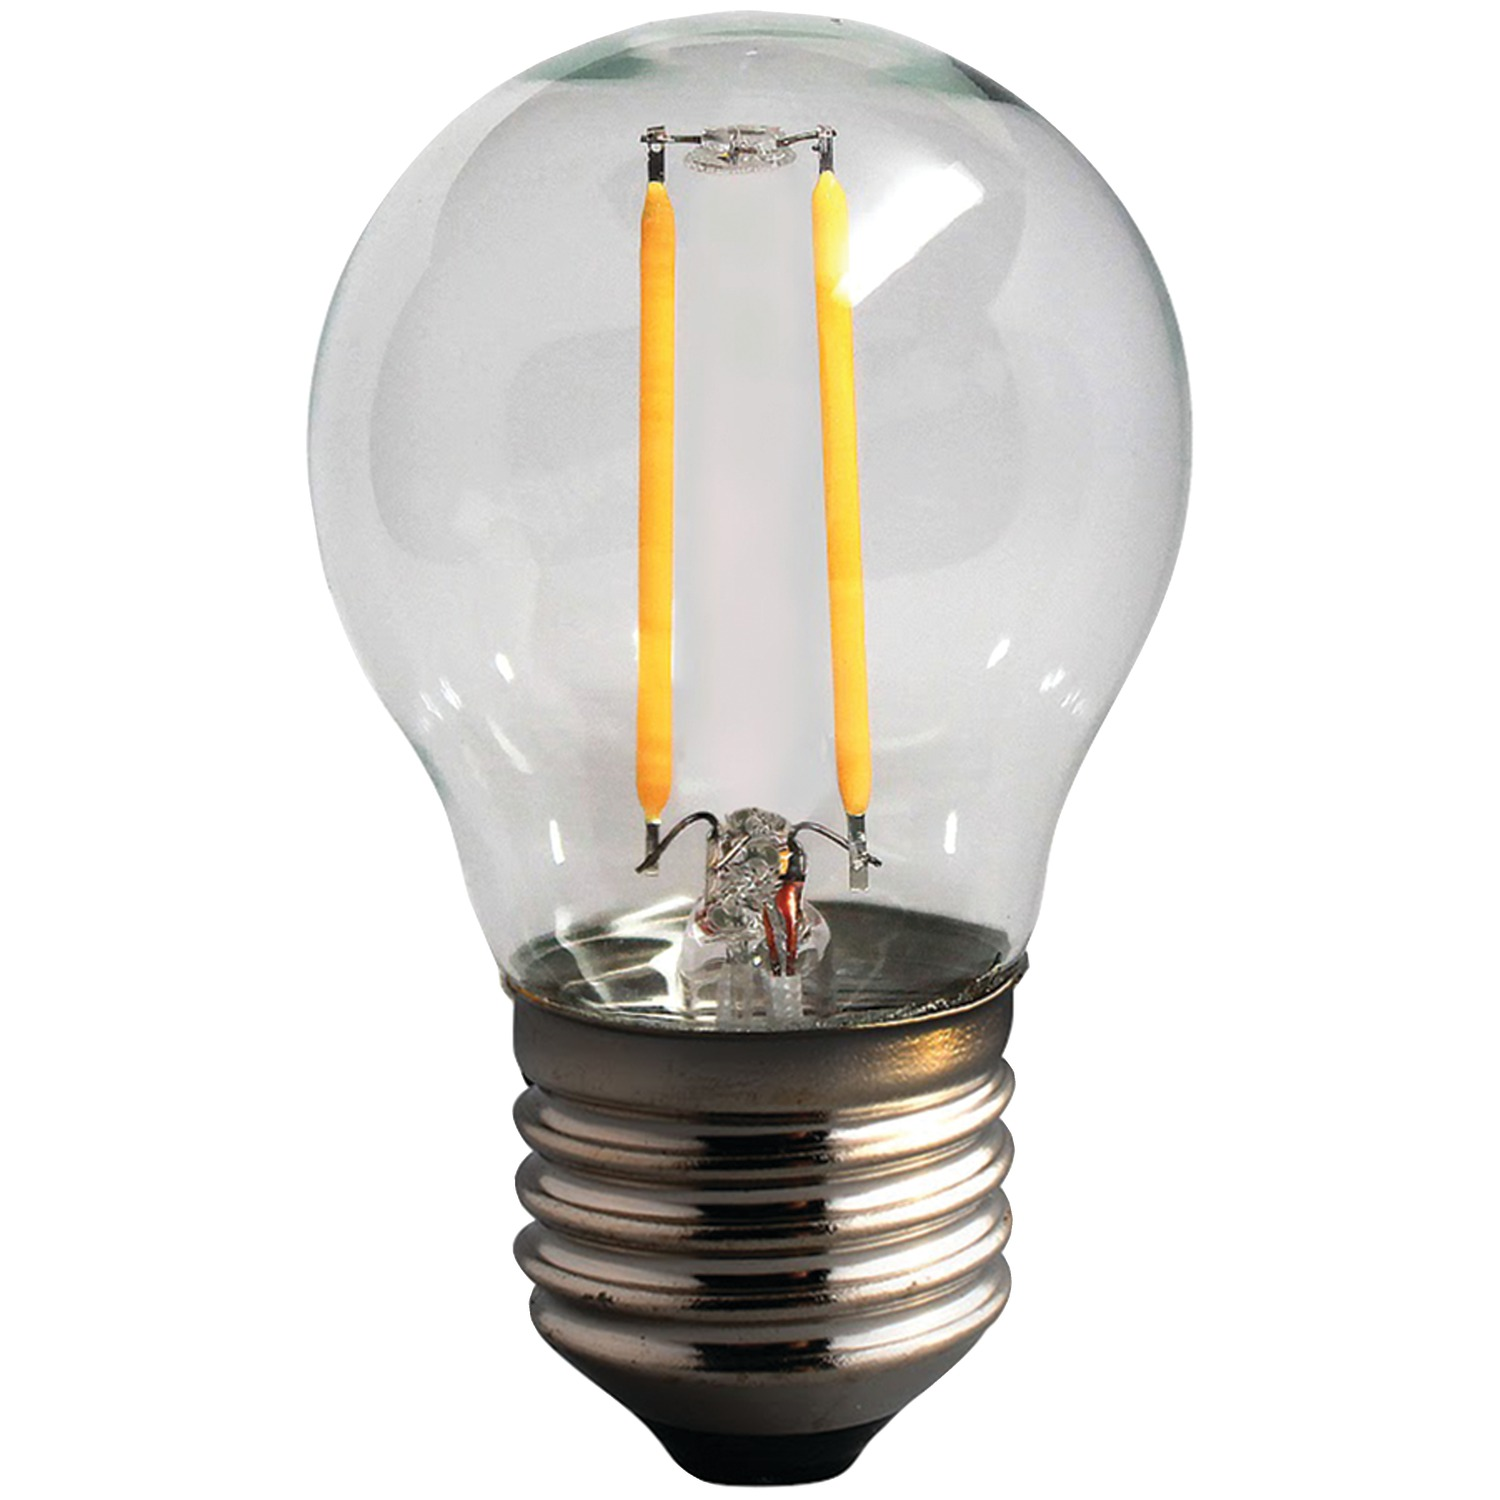 Sleek Lighting 18128 2 Watt Dimmable Led Filament Globe Light Bulb G16